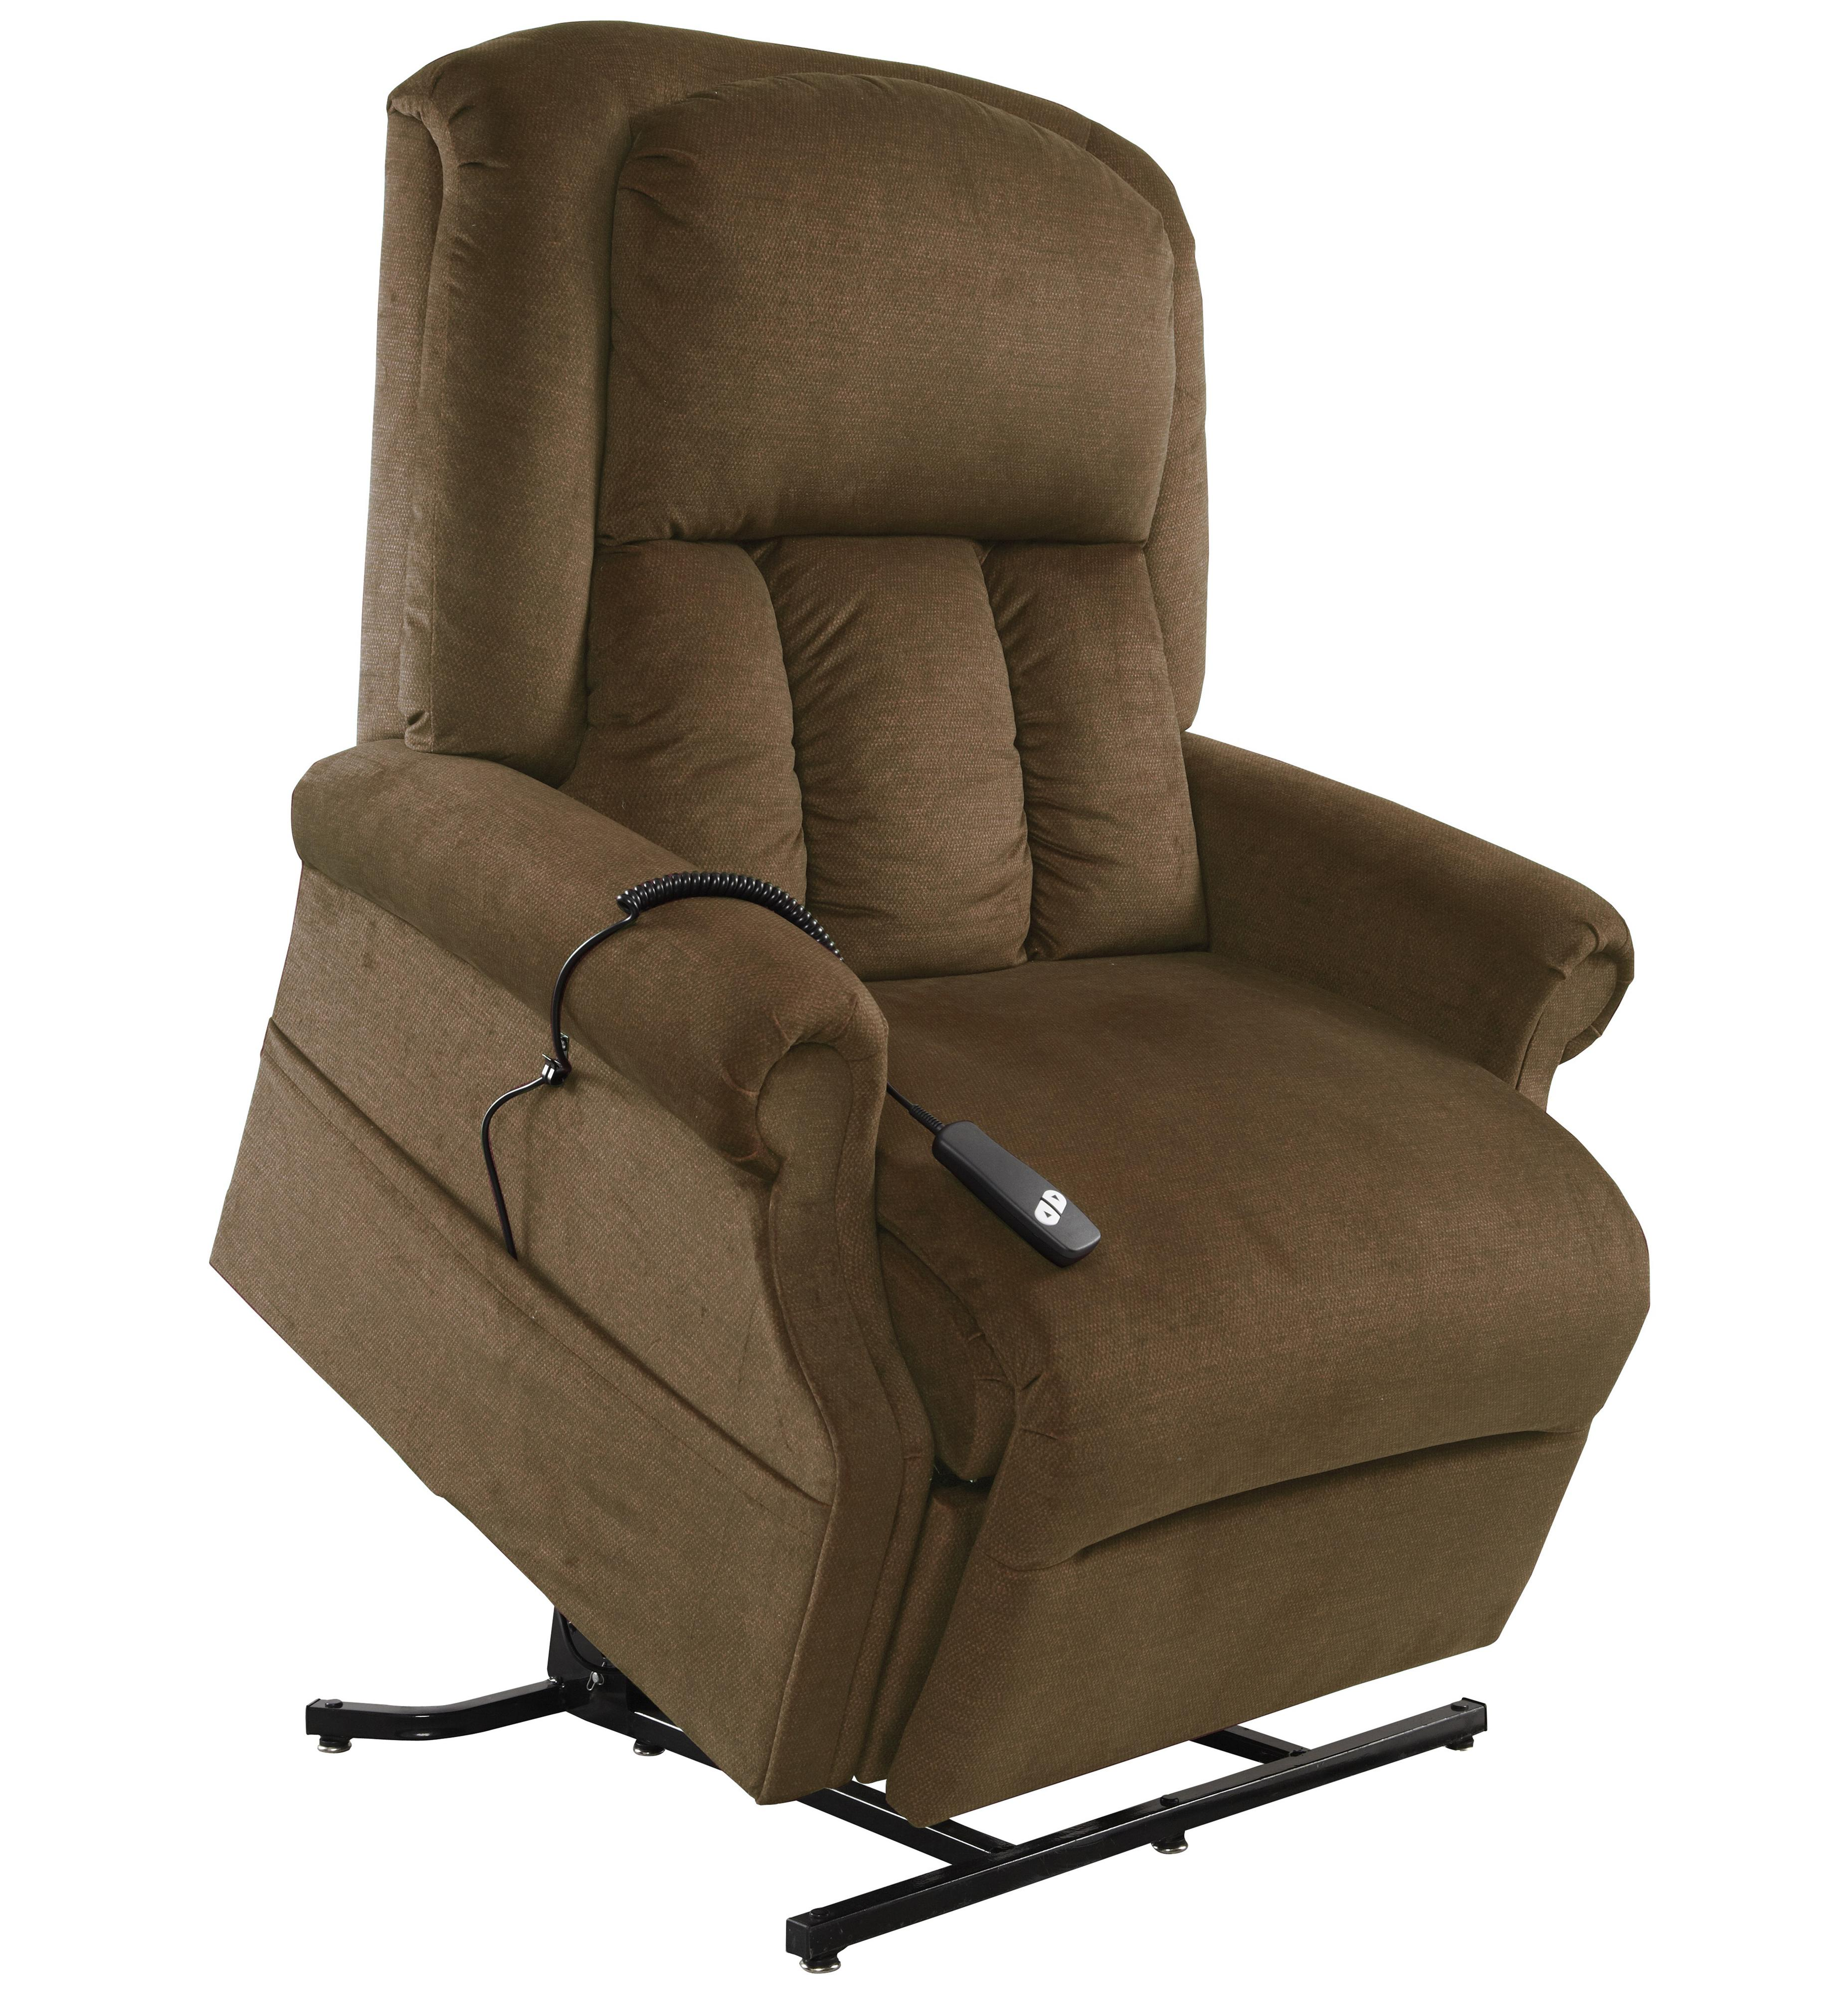 Windermere Motion Lift Chairs 3-Position Reclining Lift Chair with Power - Item Number: AS-7001 Walnut